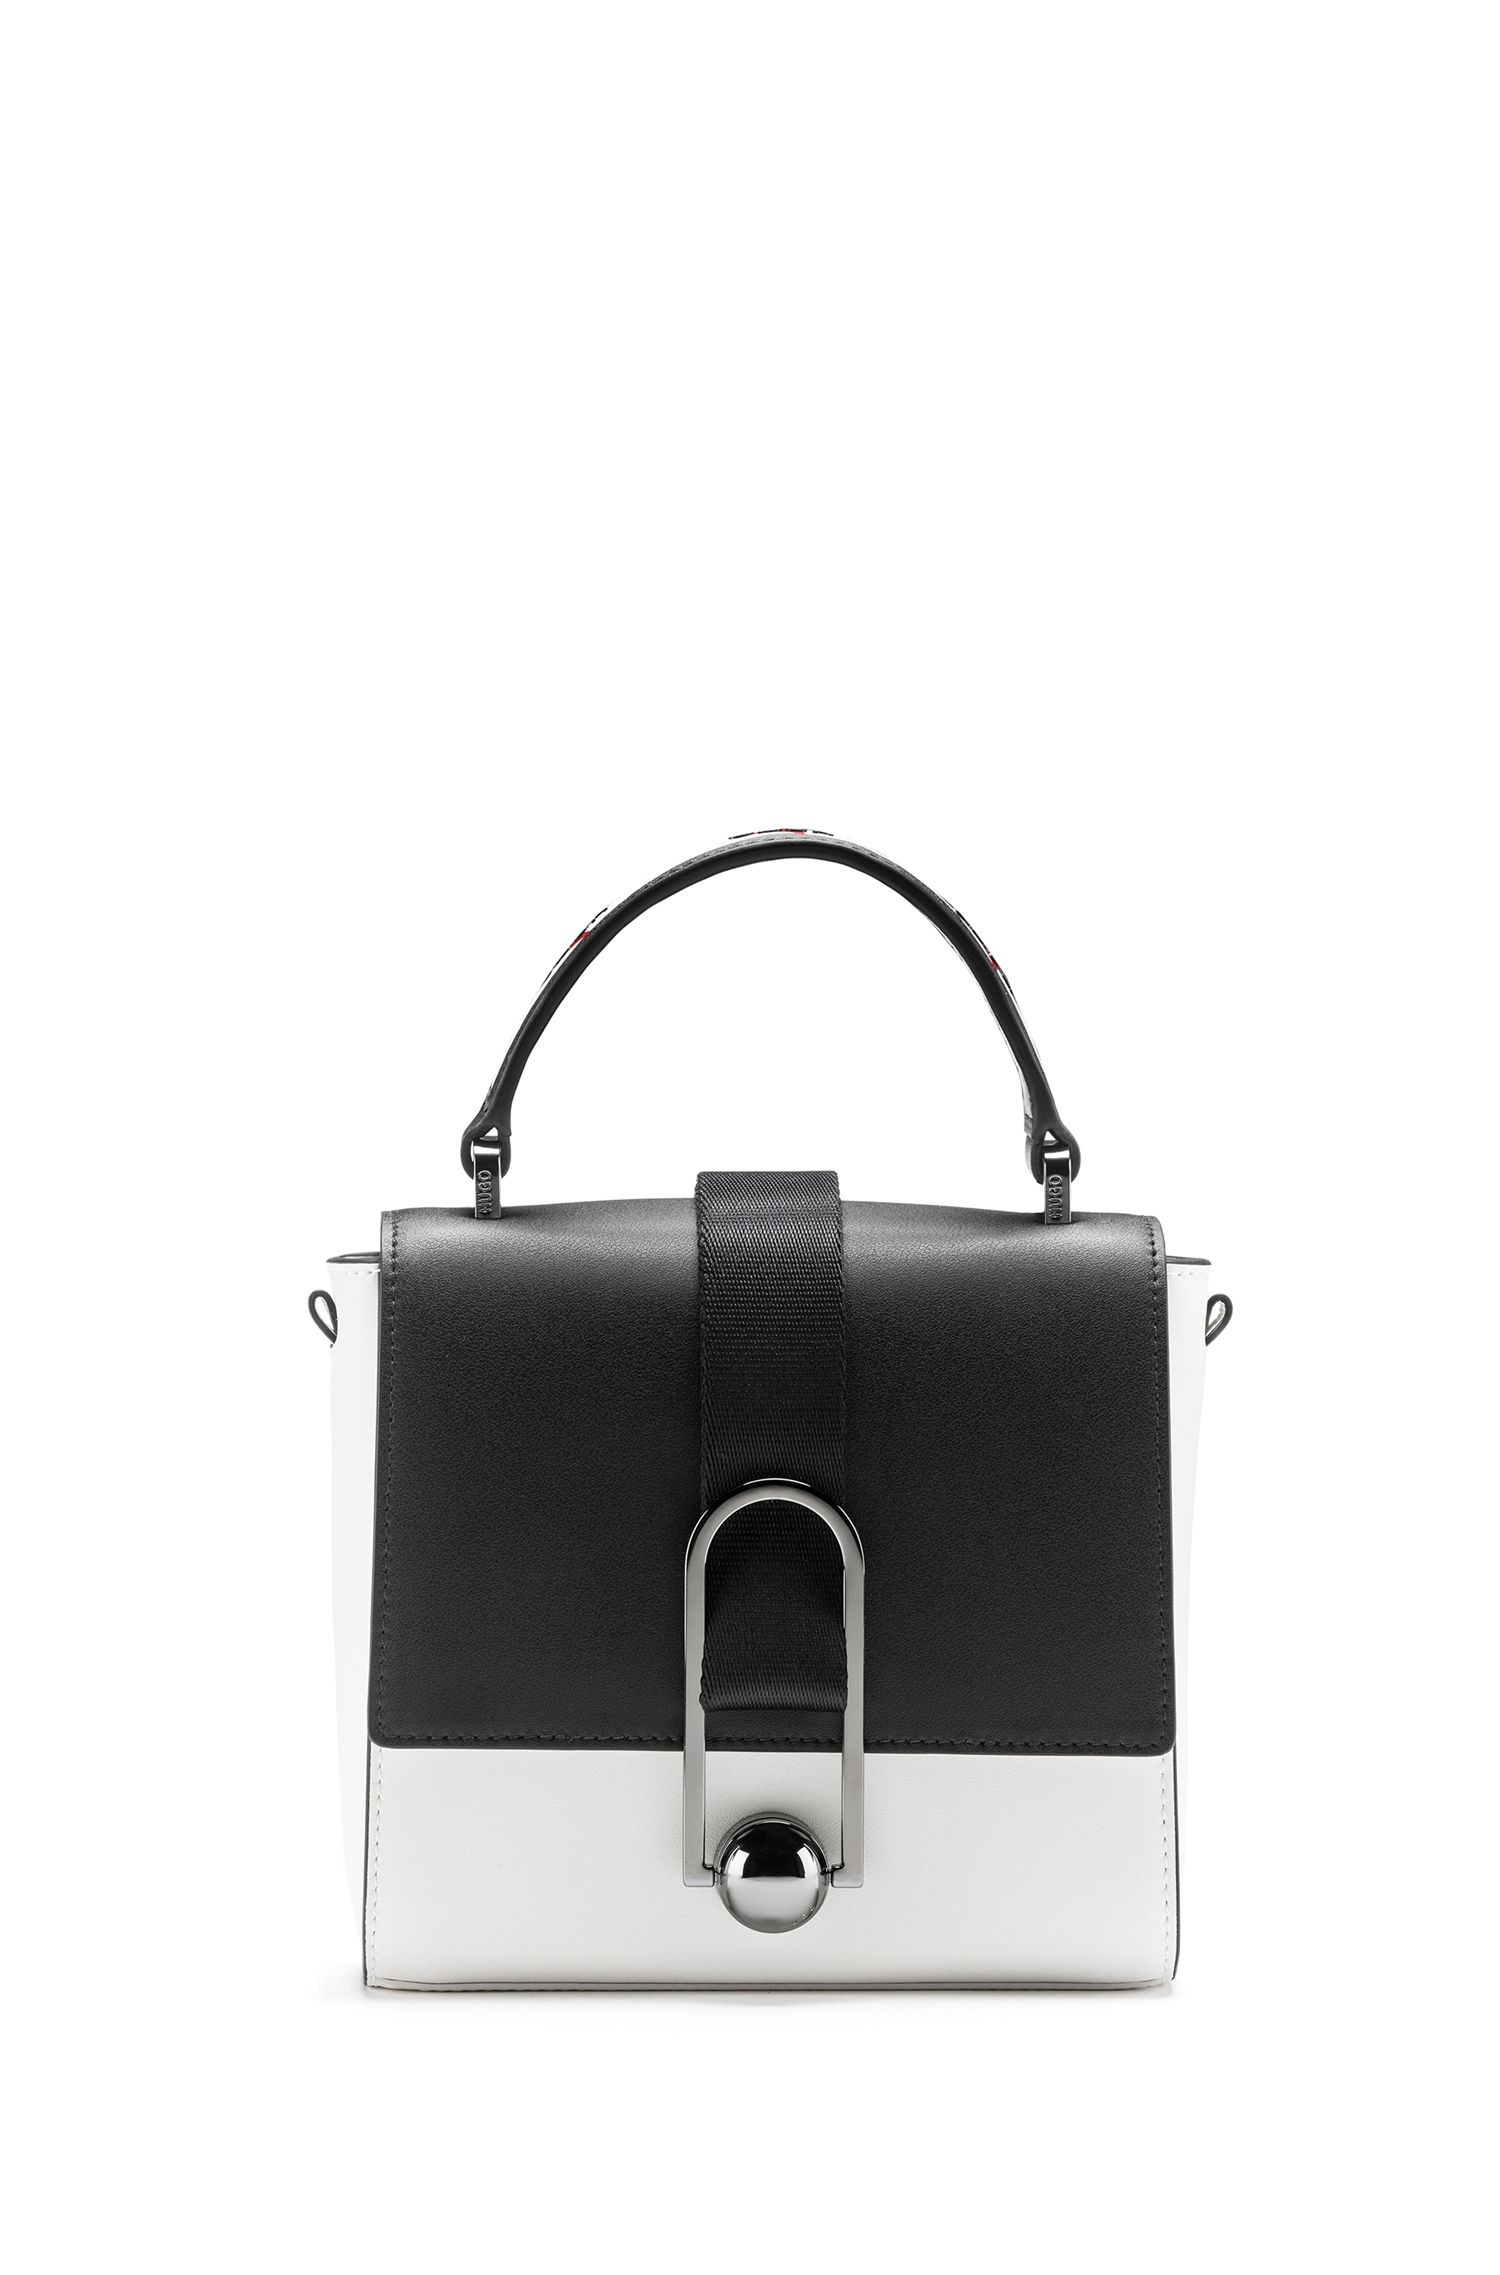 Top-handle handbag in Italian leather with rubberised finish, Open White